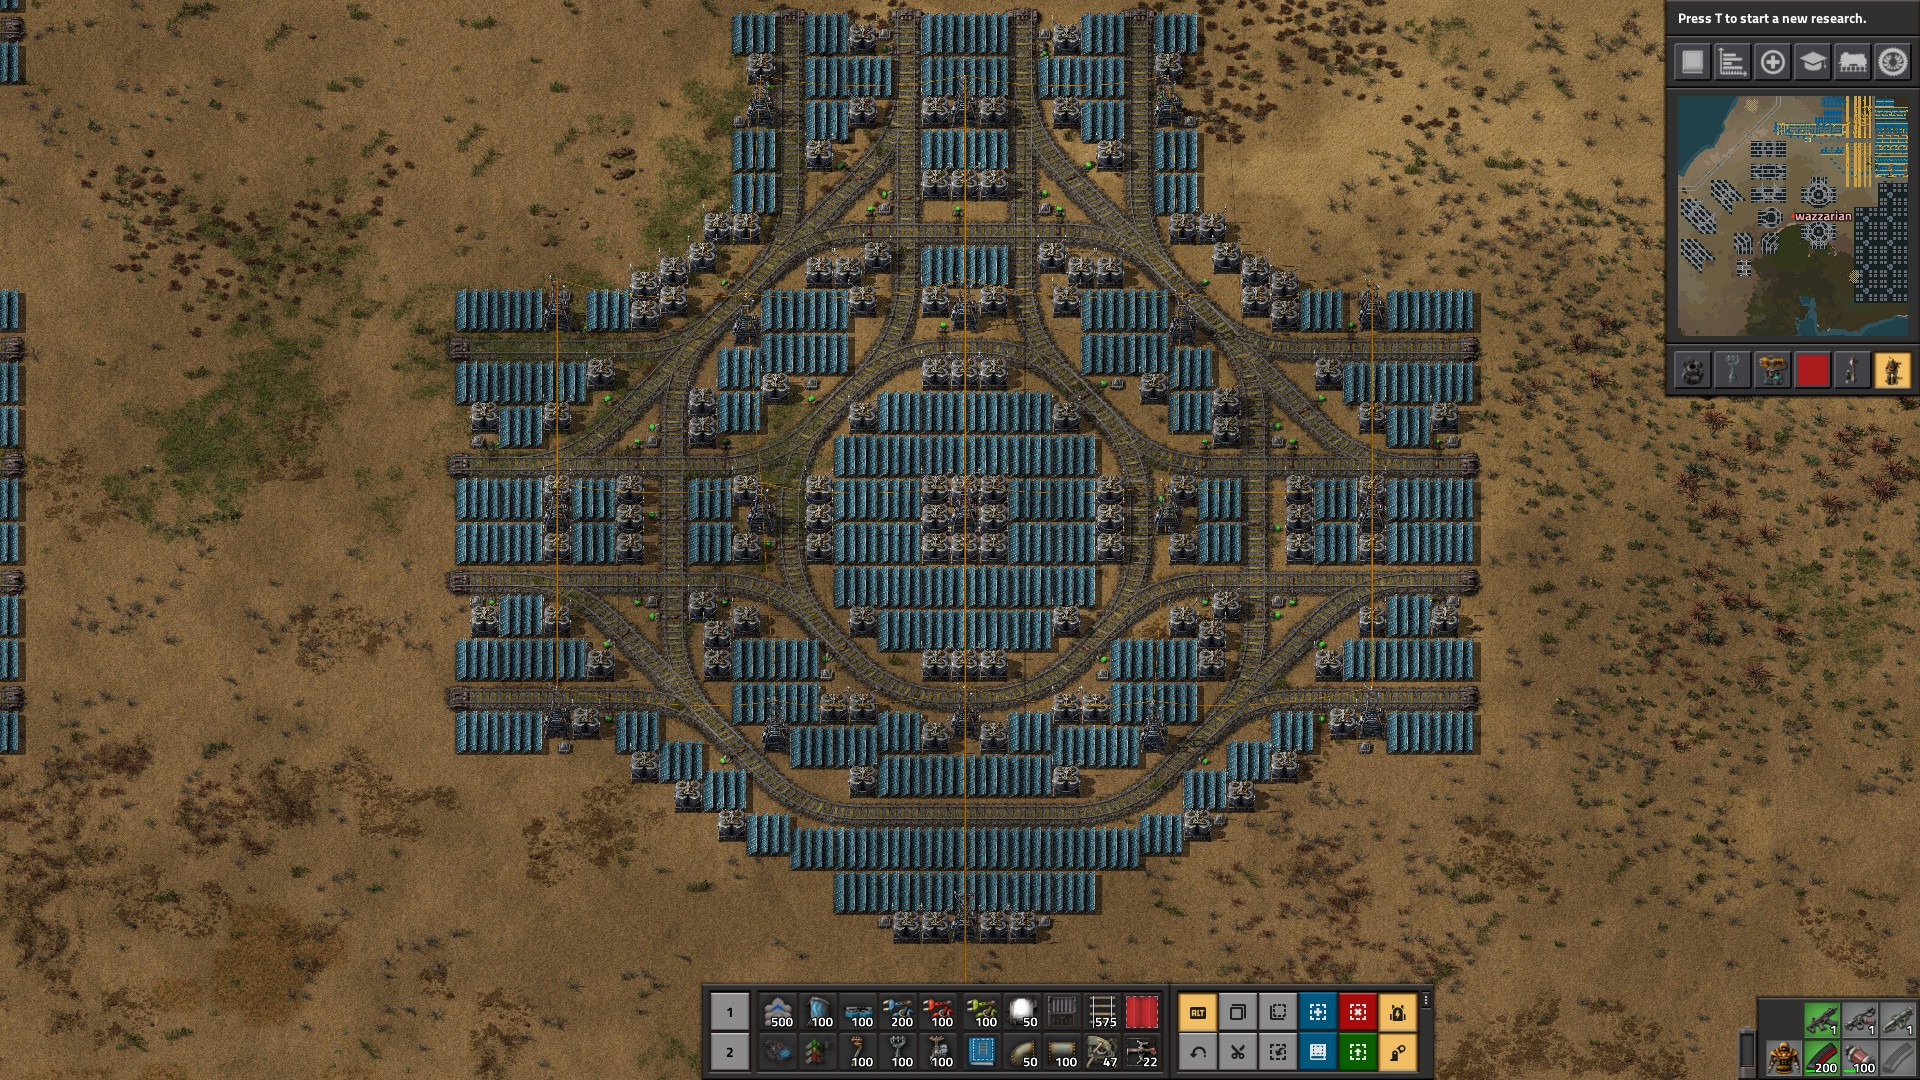 3 way intersection